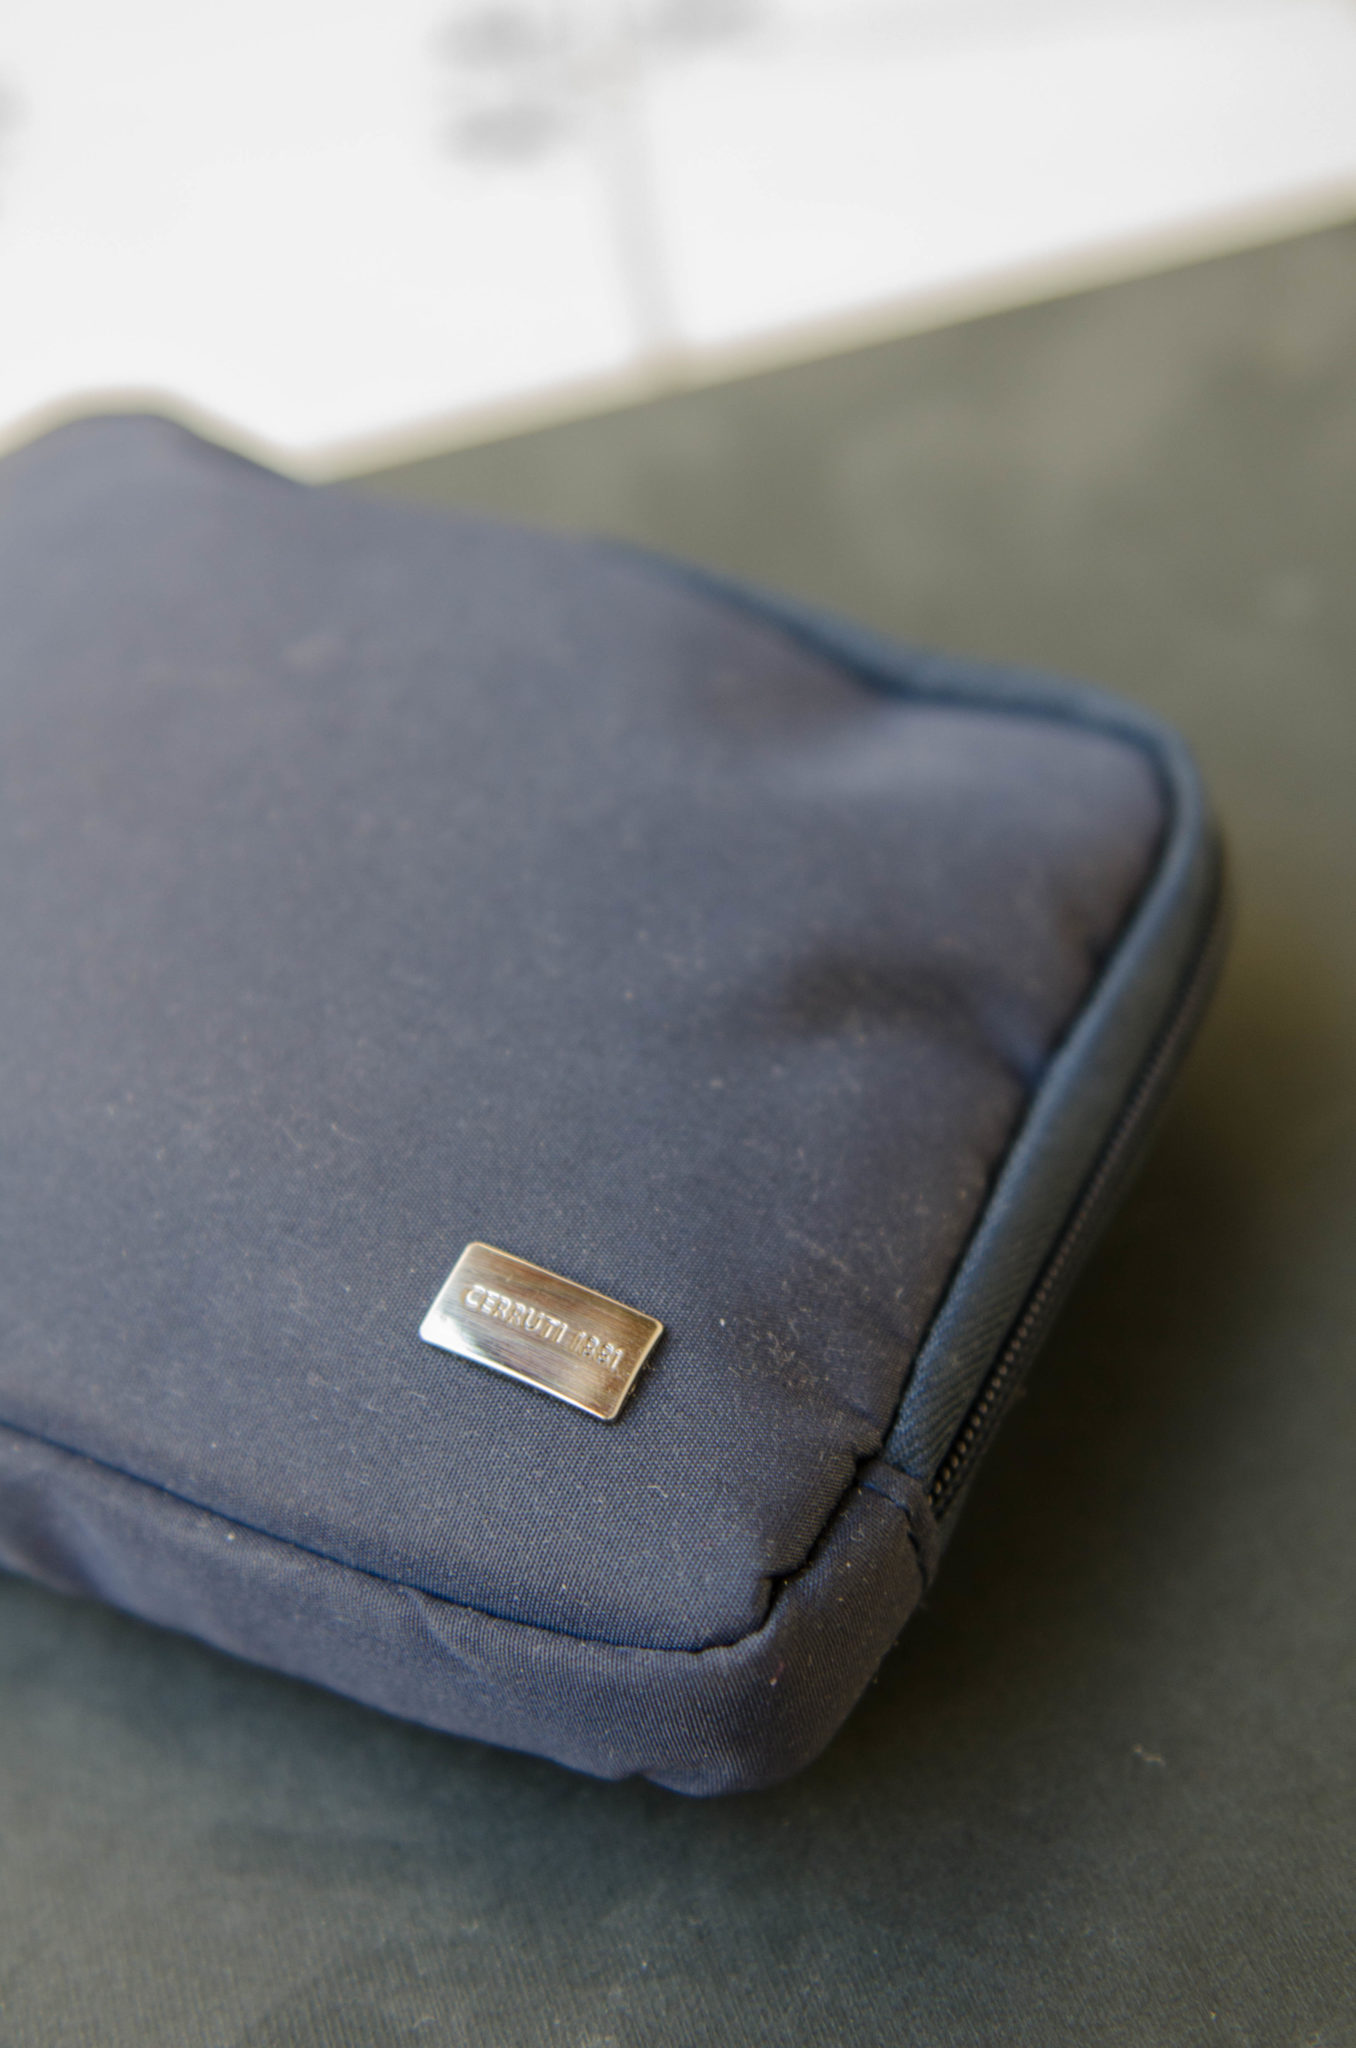 Turkish Airlines Business Class: Amenity Kit